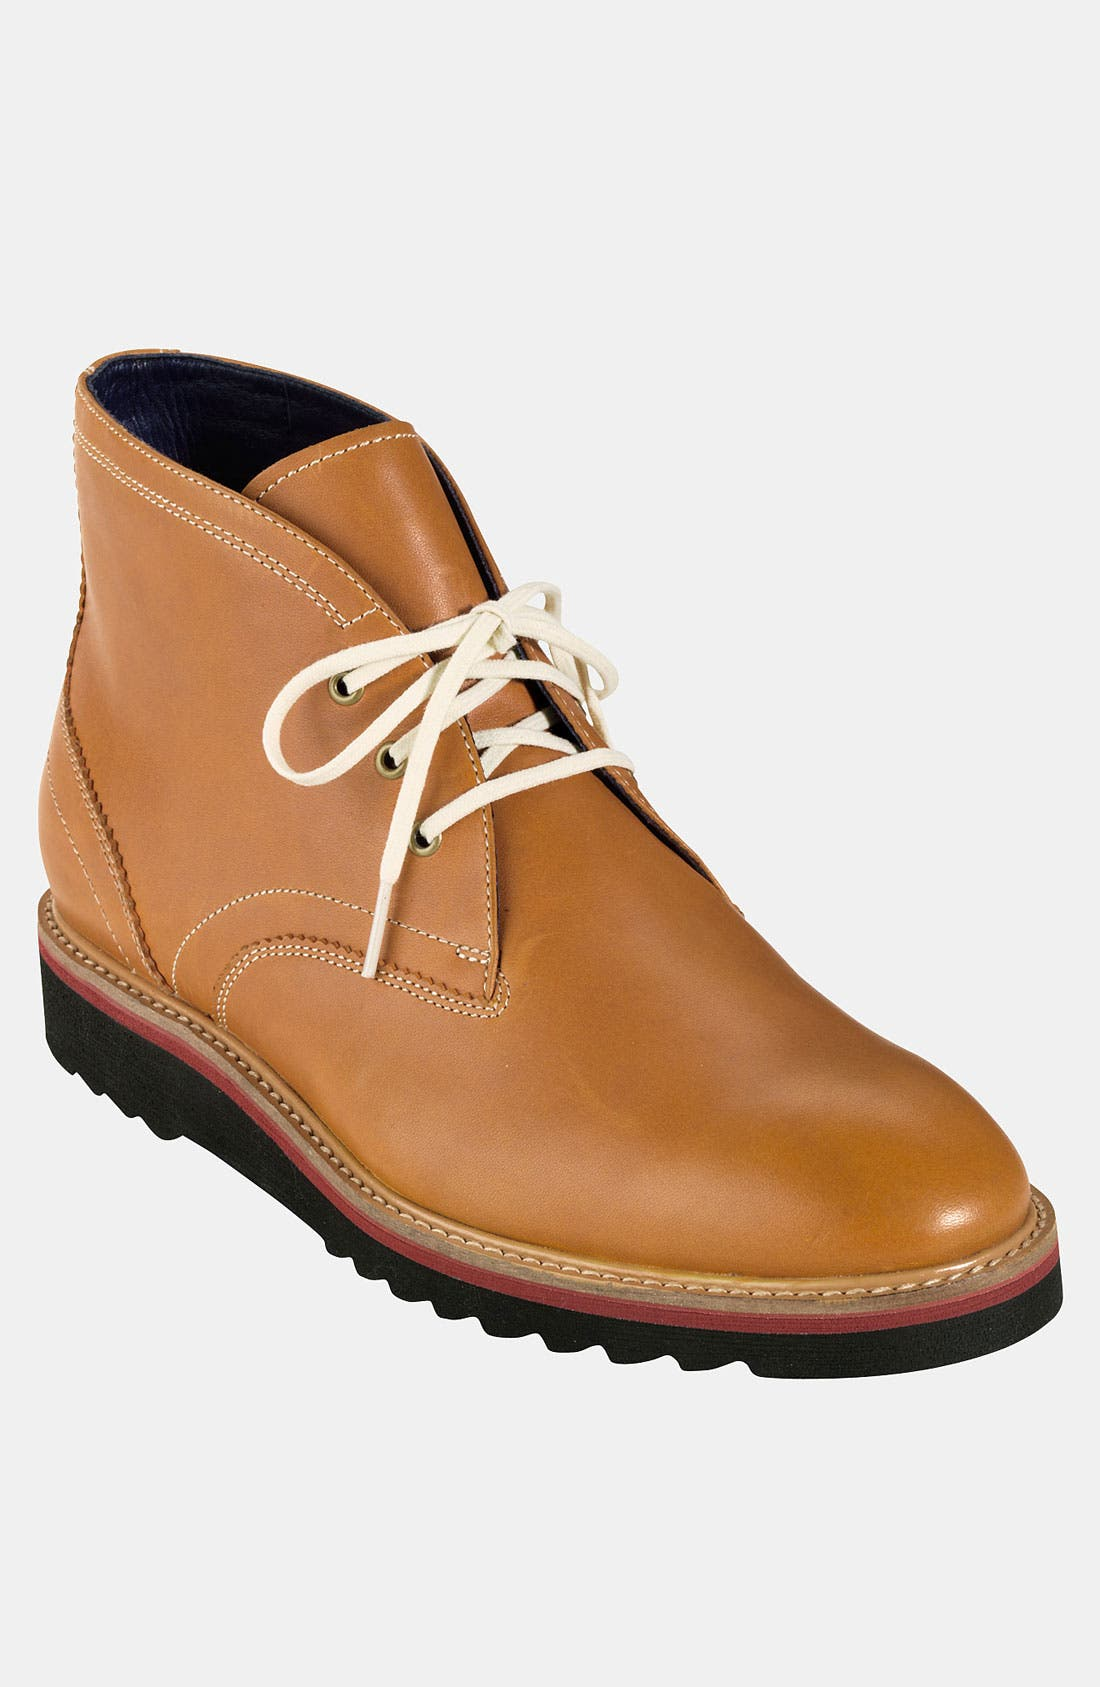 Alternate Image 1 Selected - Cole Haan 'Air Morris' Chukka Boot